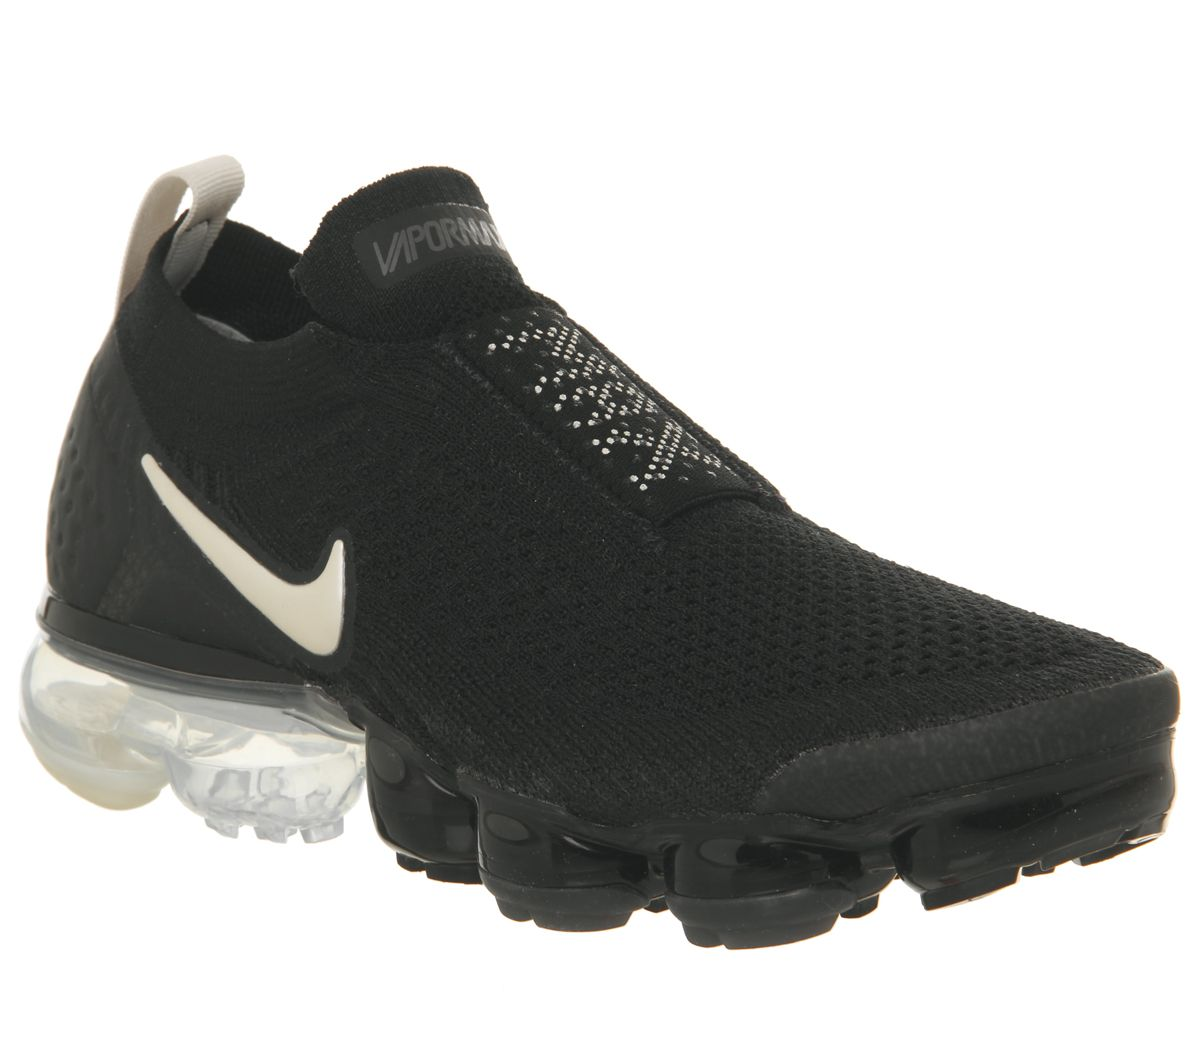 09c941e94c6f Nike Air Vapormax Flyknit Moc 2 Trainers Black Light Cream White ...